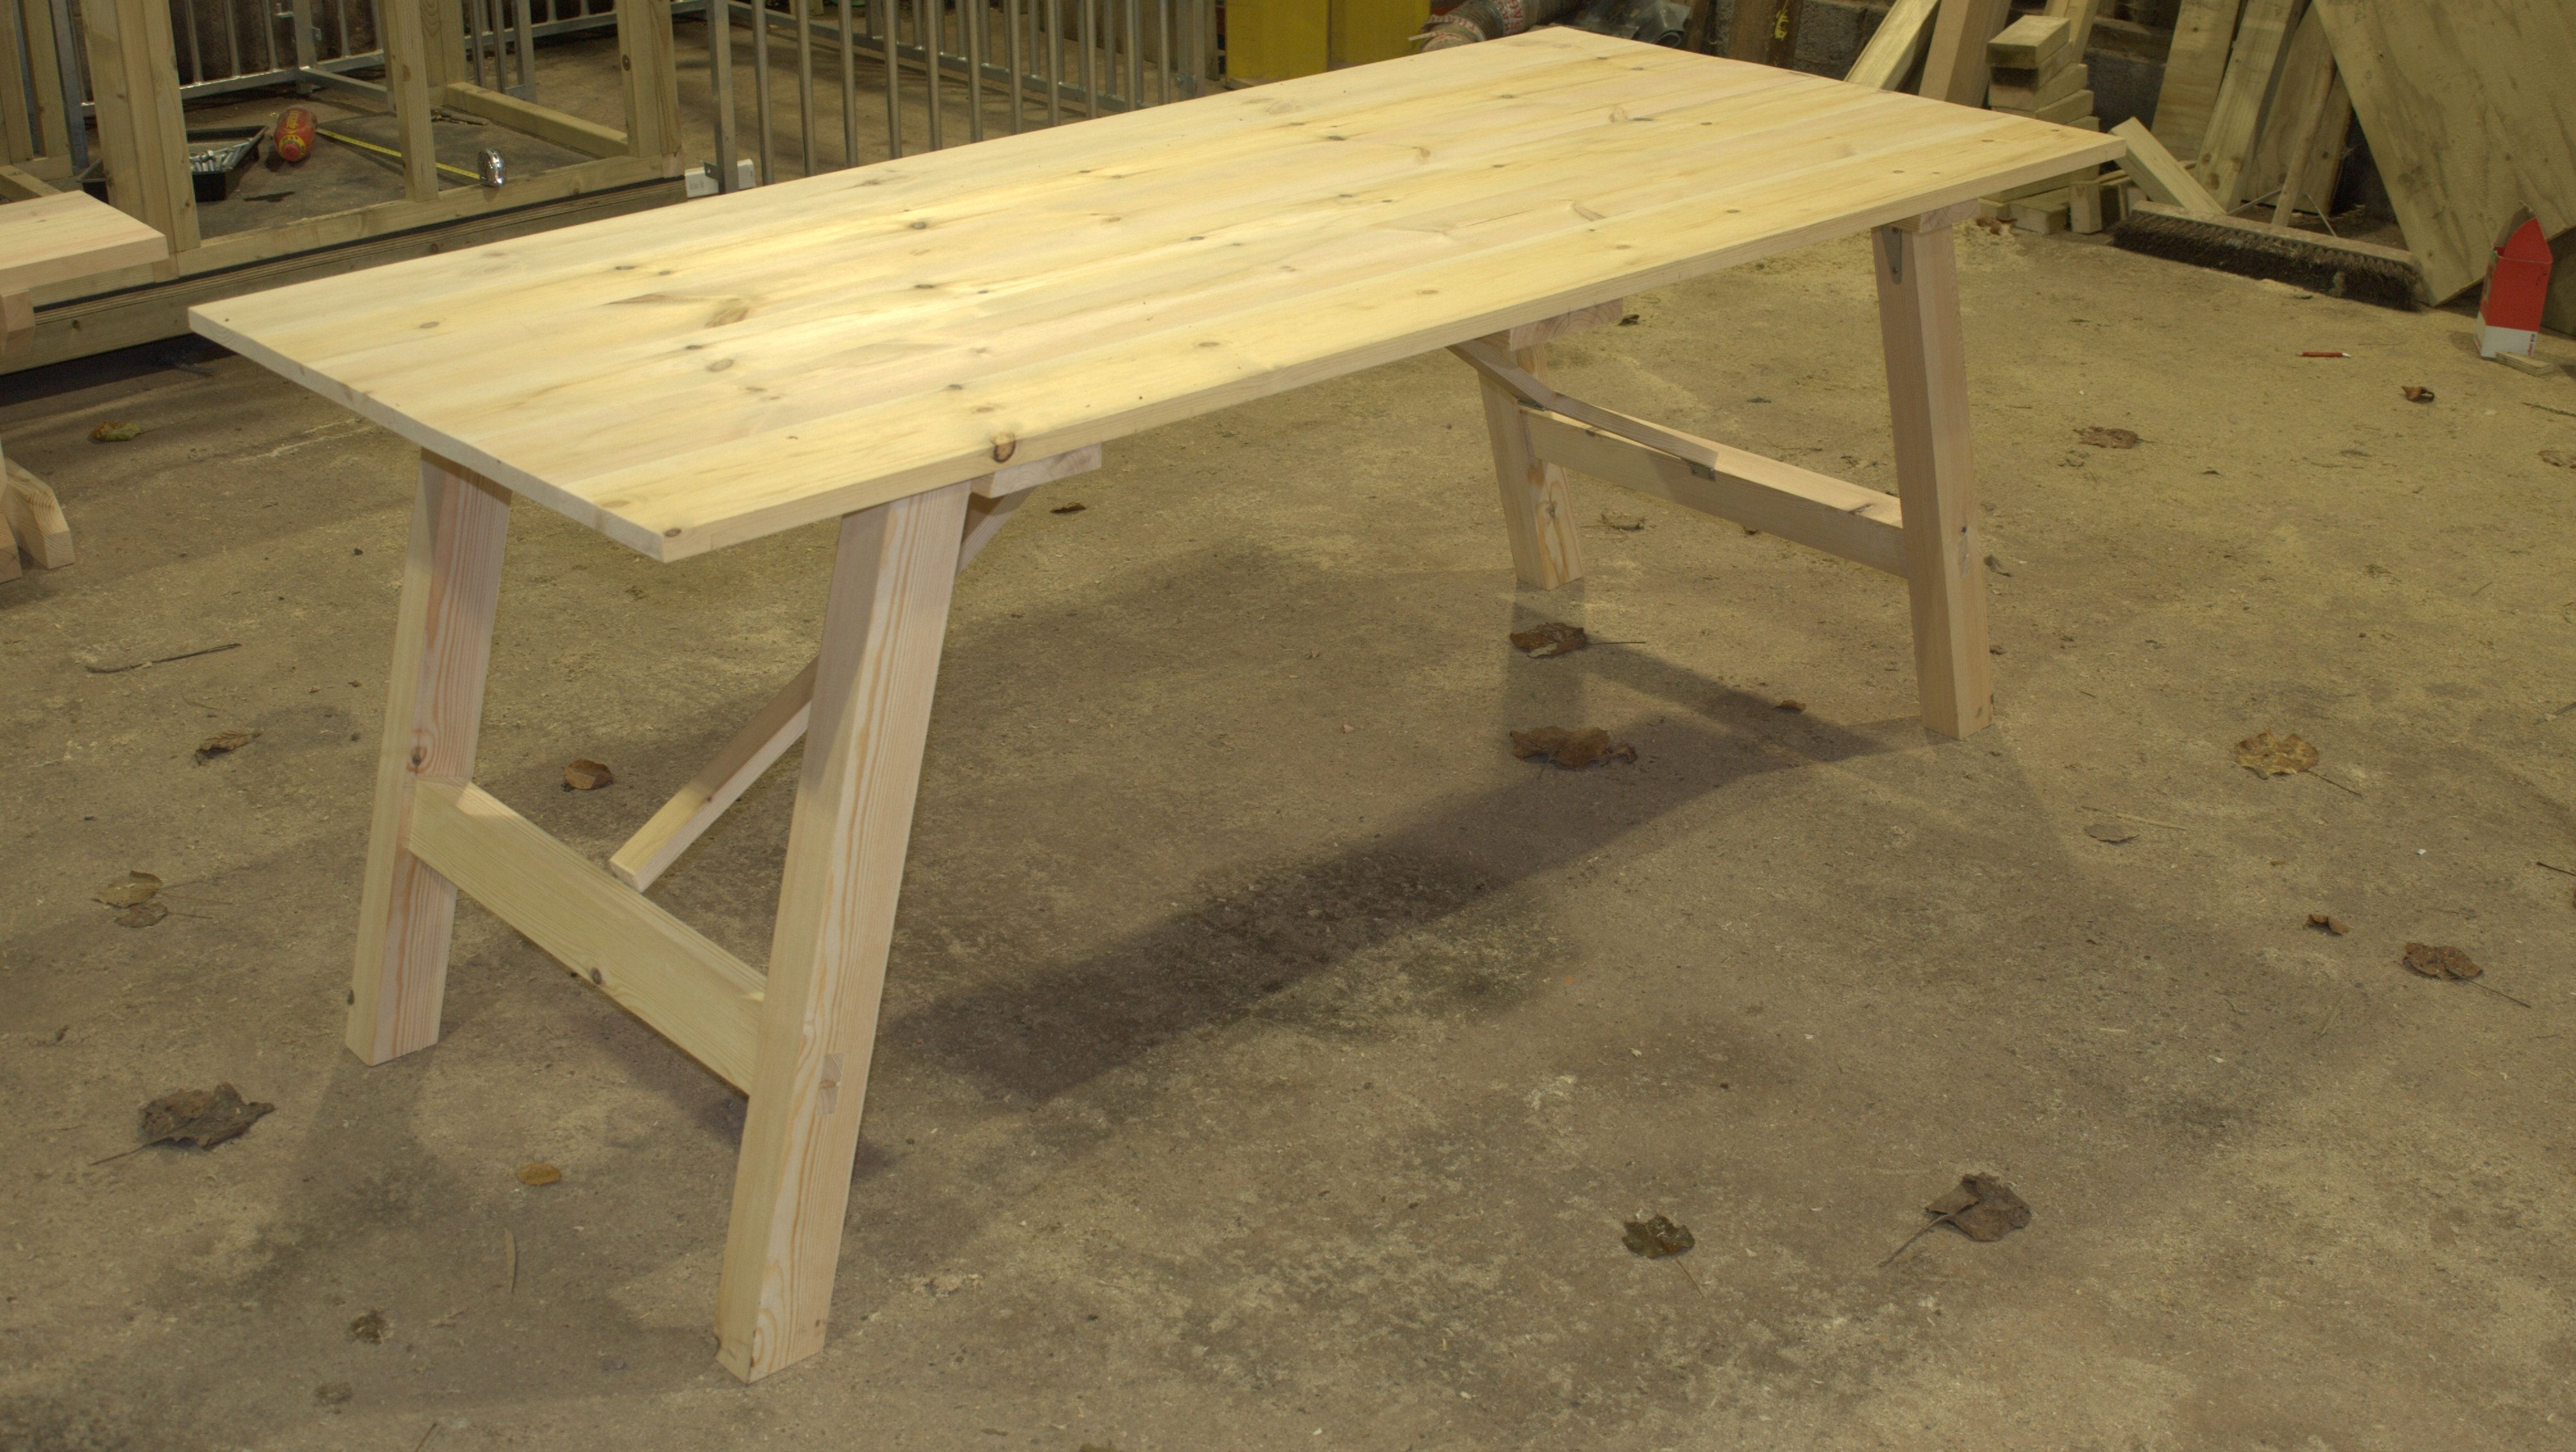 Wooden Trestle Tables Suitable For Dining Foldabe Legs Ease Of Storage Multiple Purchases S And Delivery Across The Uk